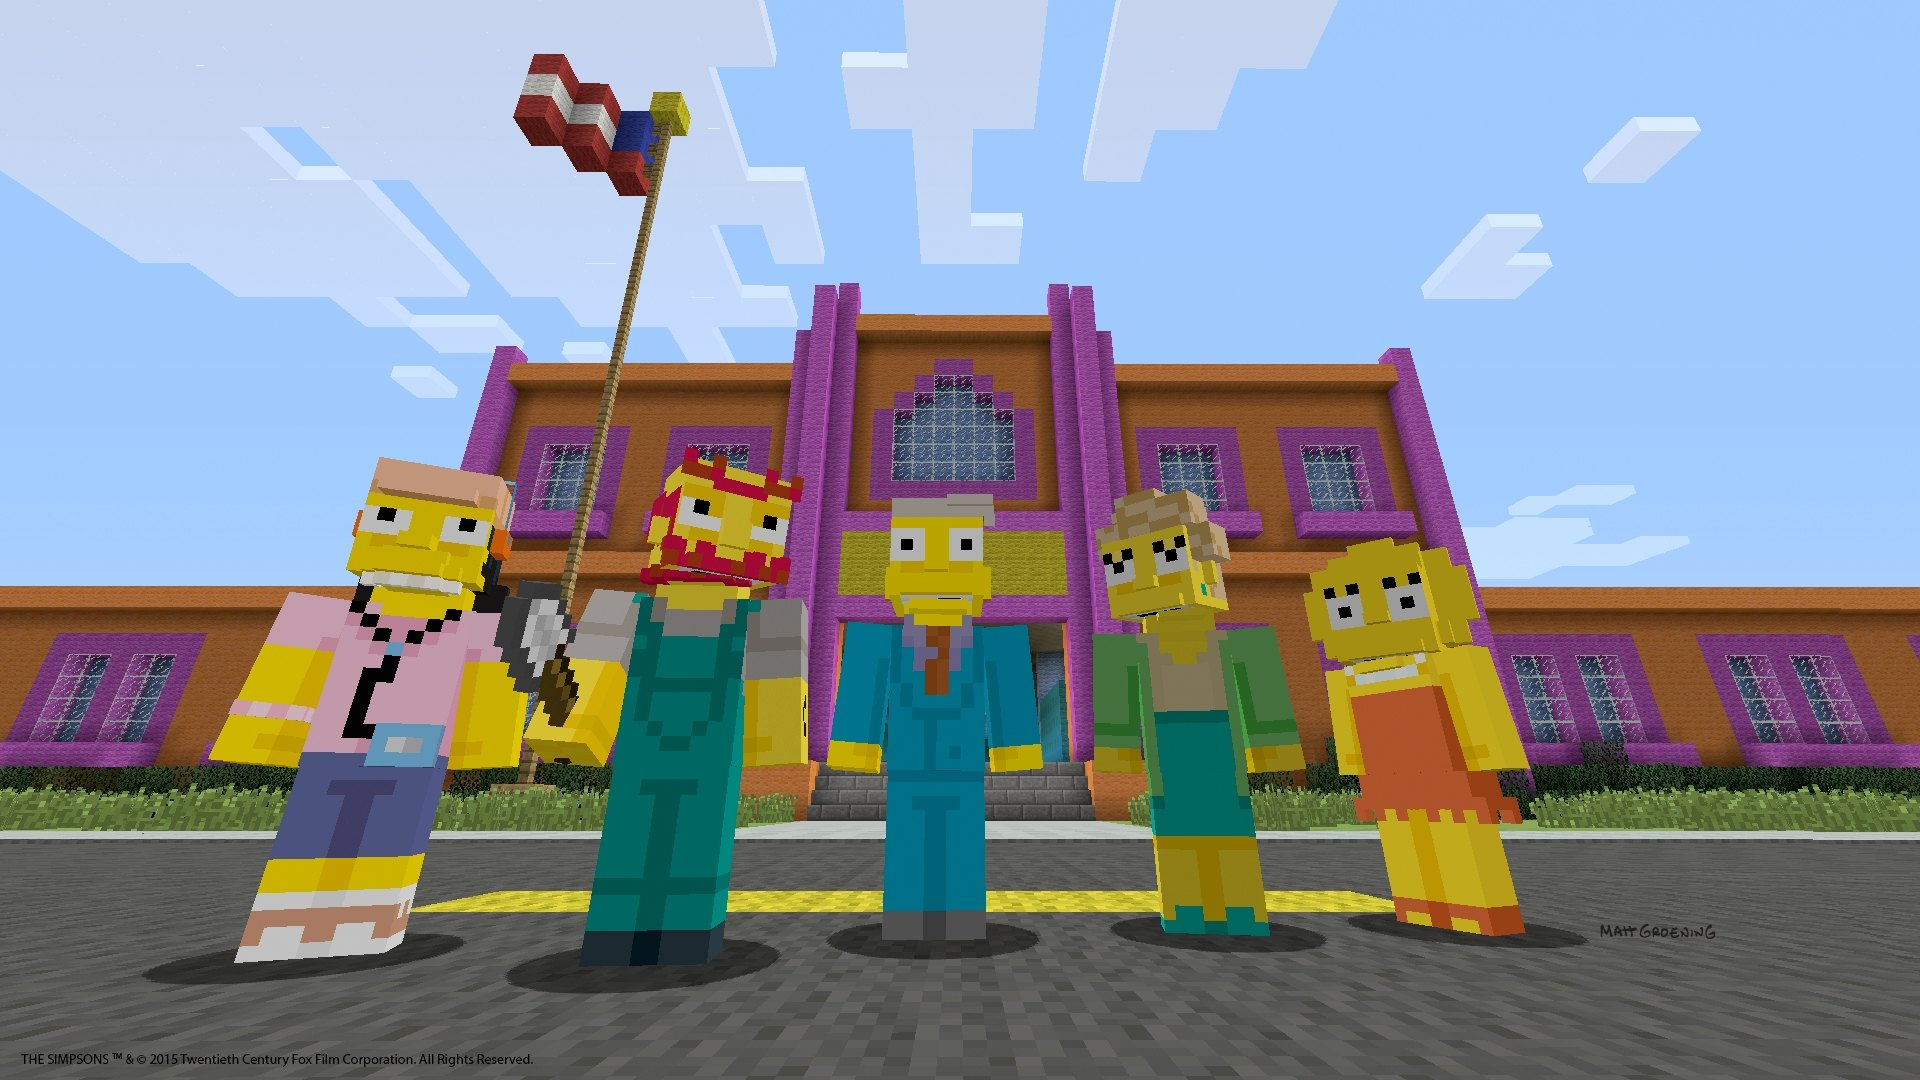 Minecraft Update and The Simpsons DLC Coming to PS4, PS3, PS Vita